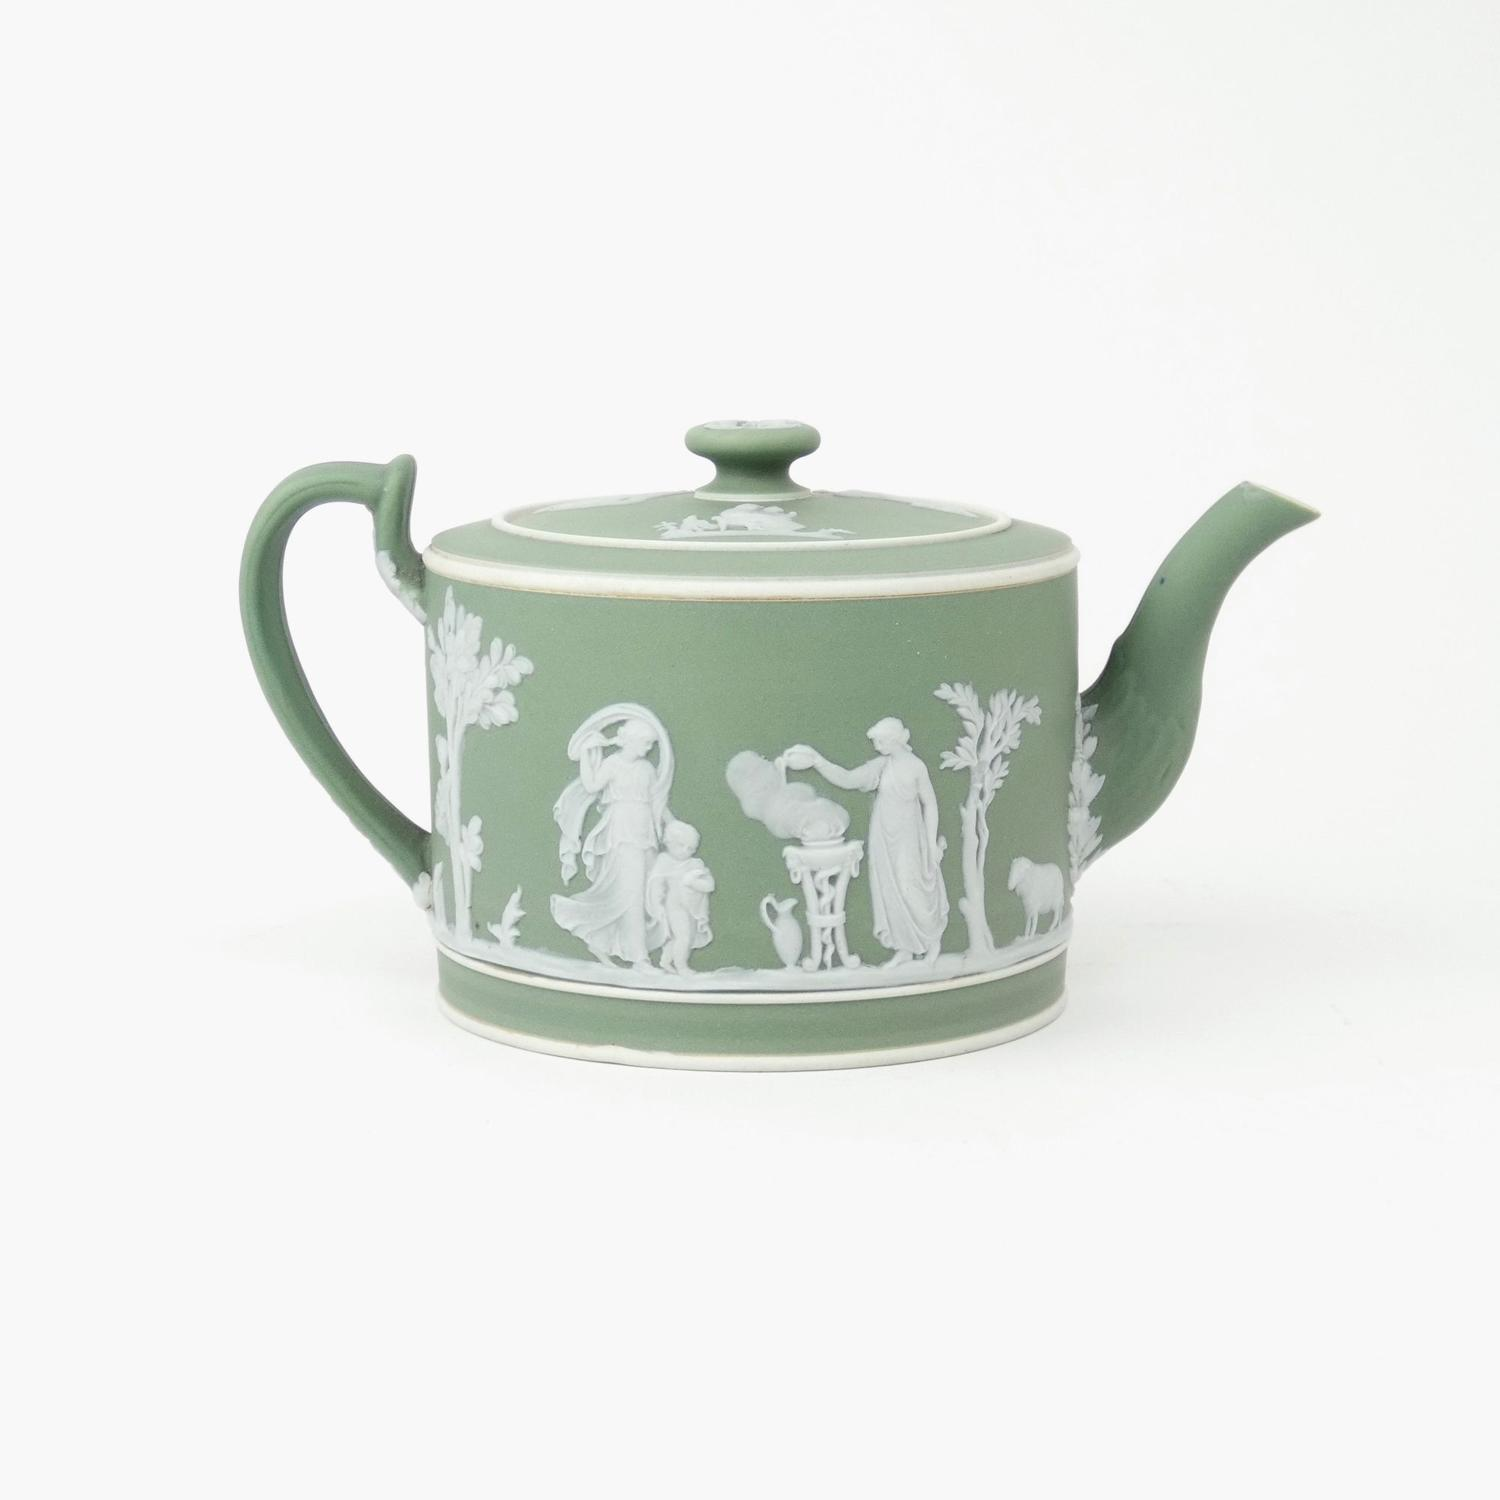 Green, drum shaped teapot